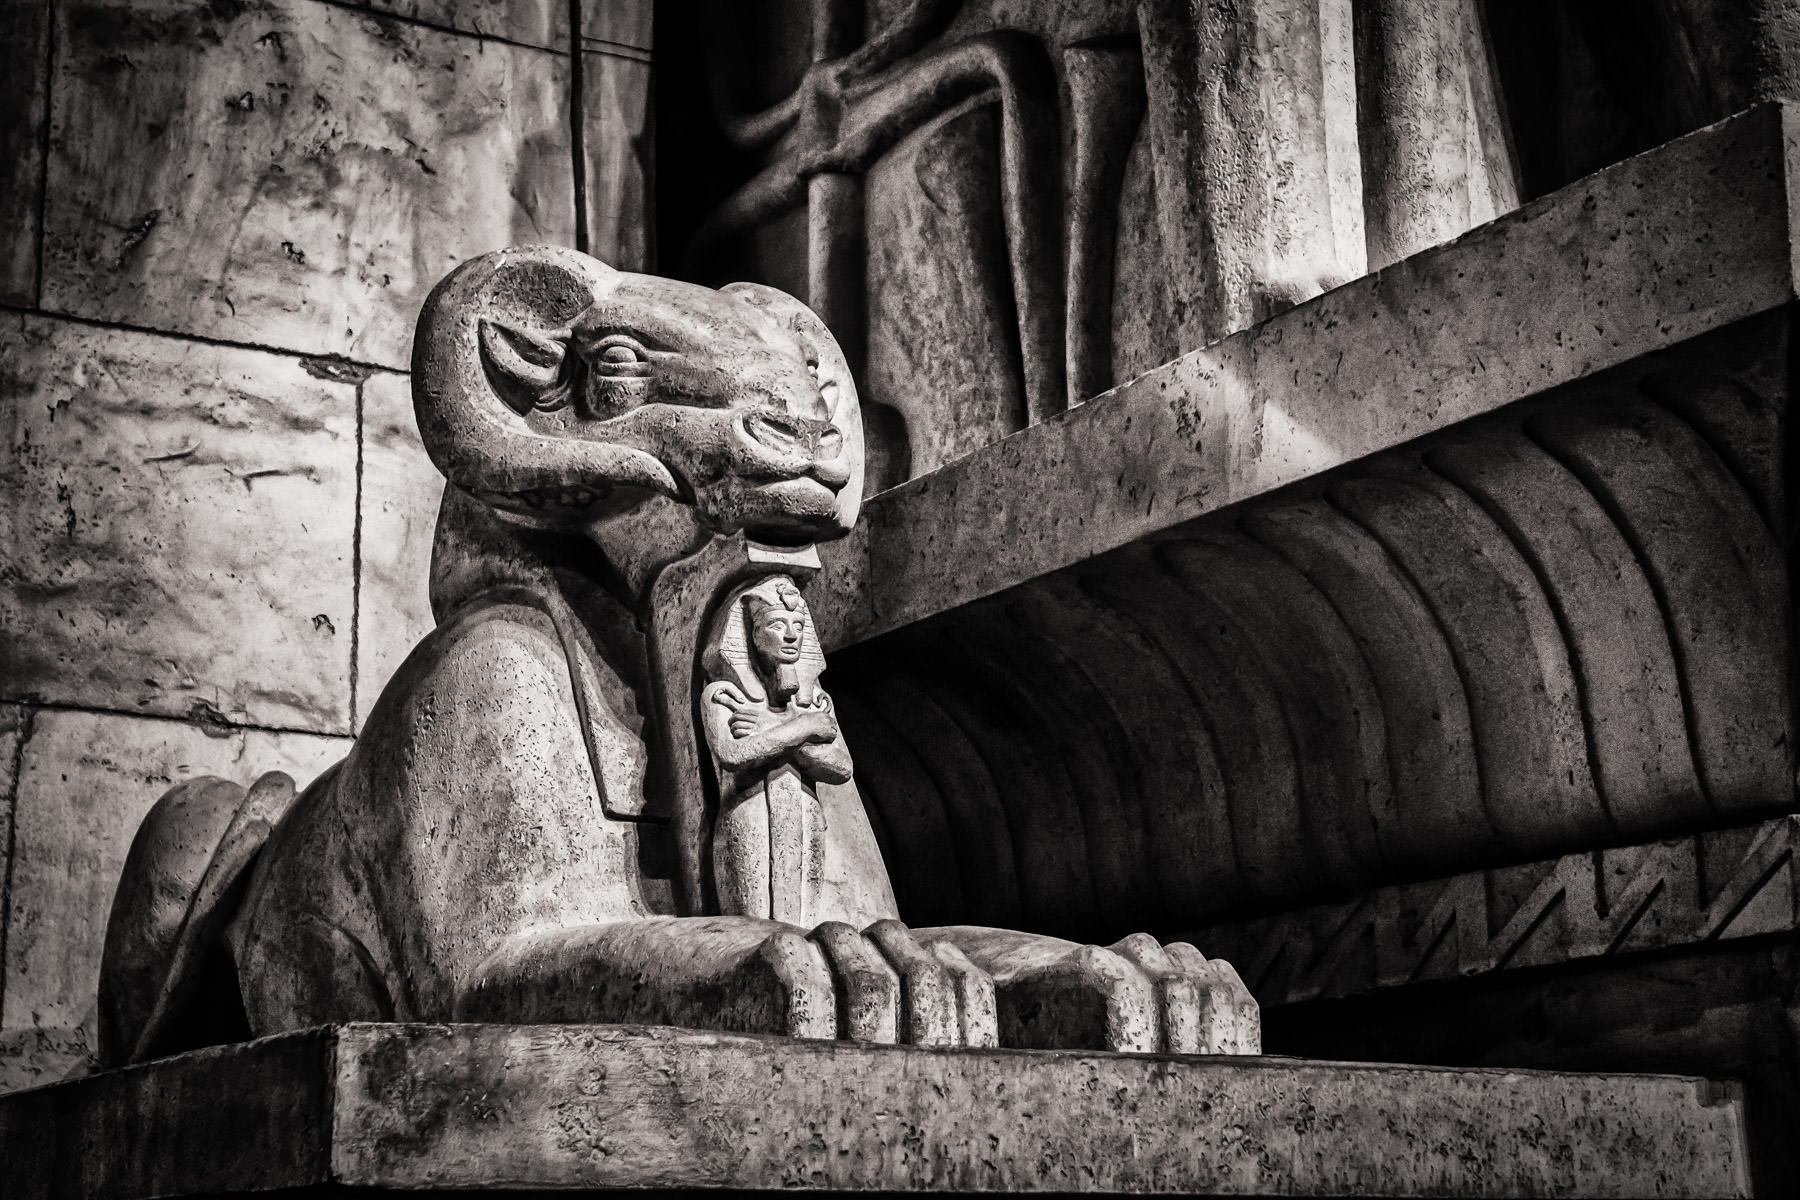 An Egyptian statue of a ram at Las Vegas' Luxor.